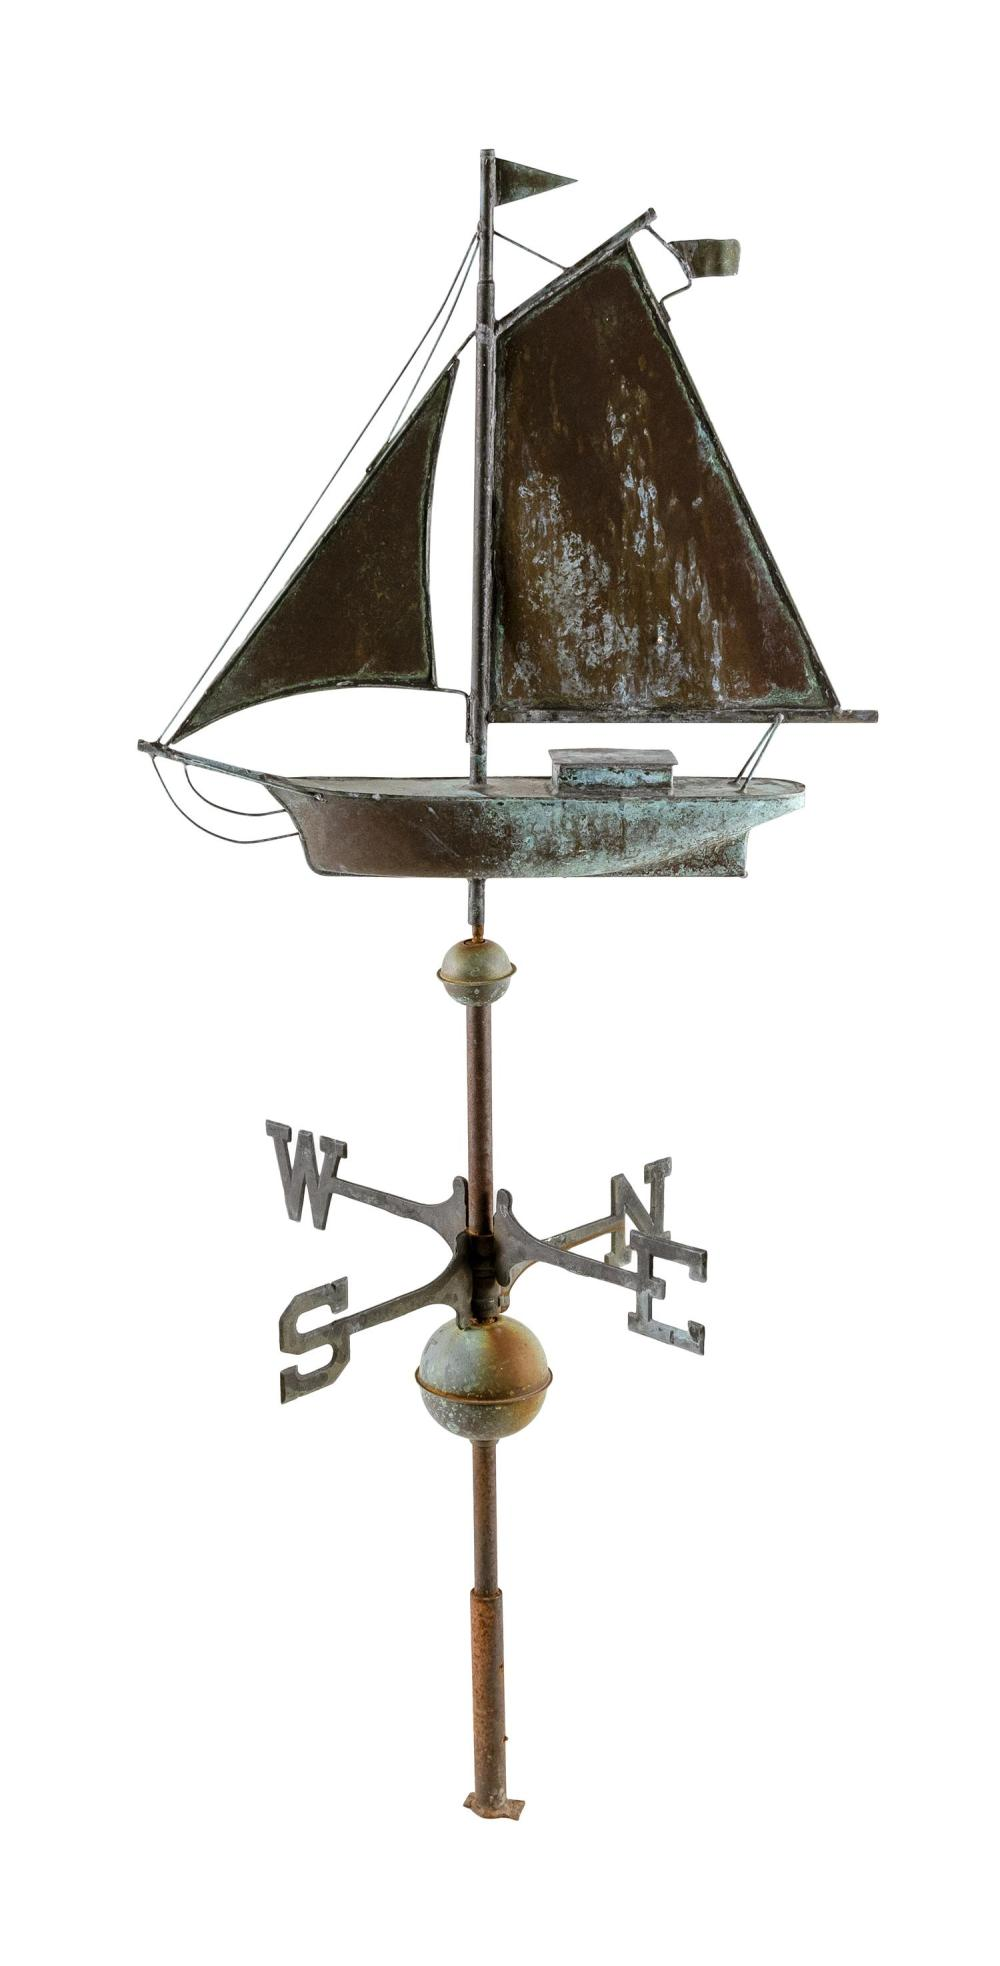 COPPER AND ZINC WEATHER VANE IN THE FORM OF A GAFF-RIGGED VESSEL On a pole with finders. Total height 52